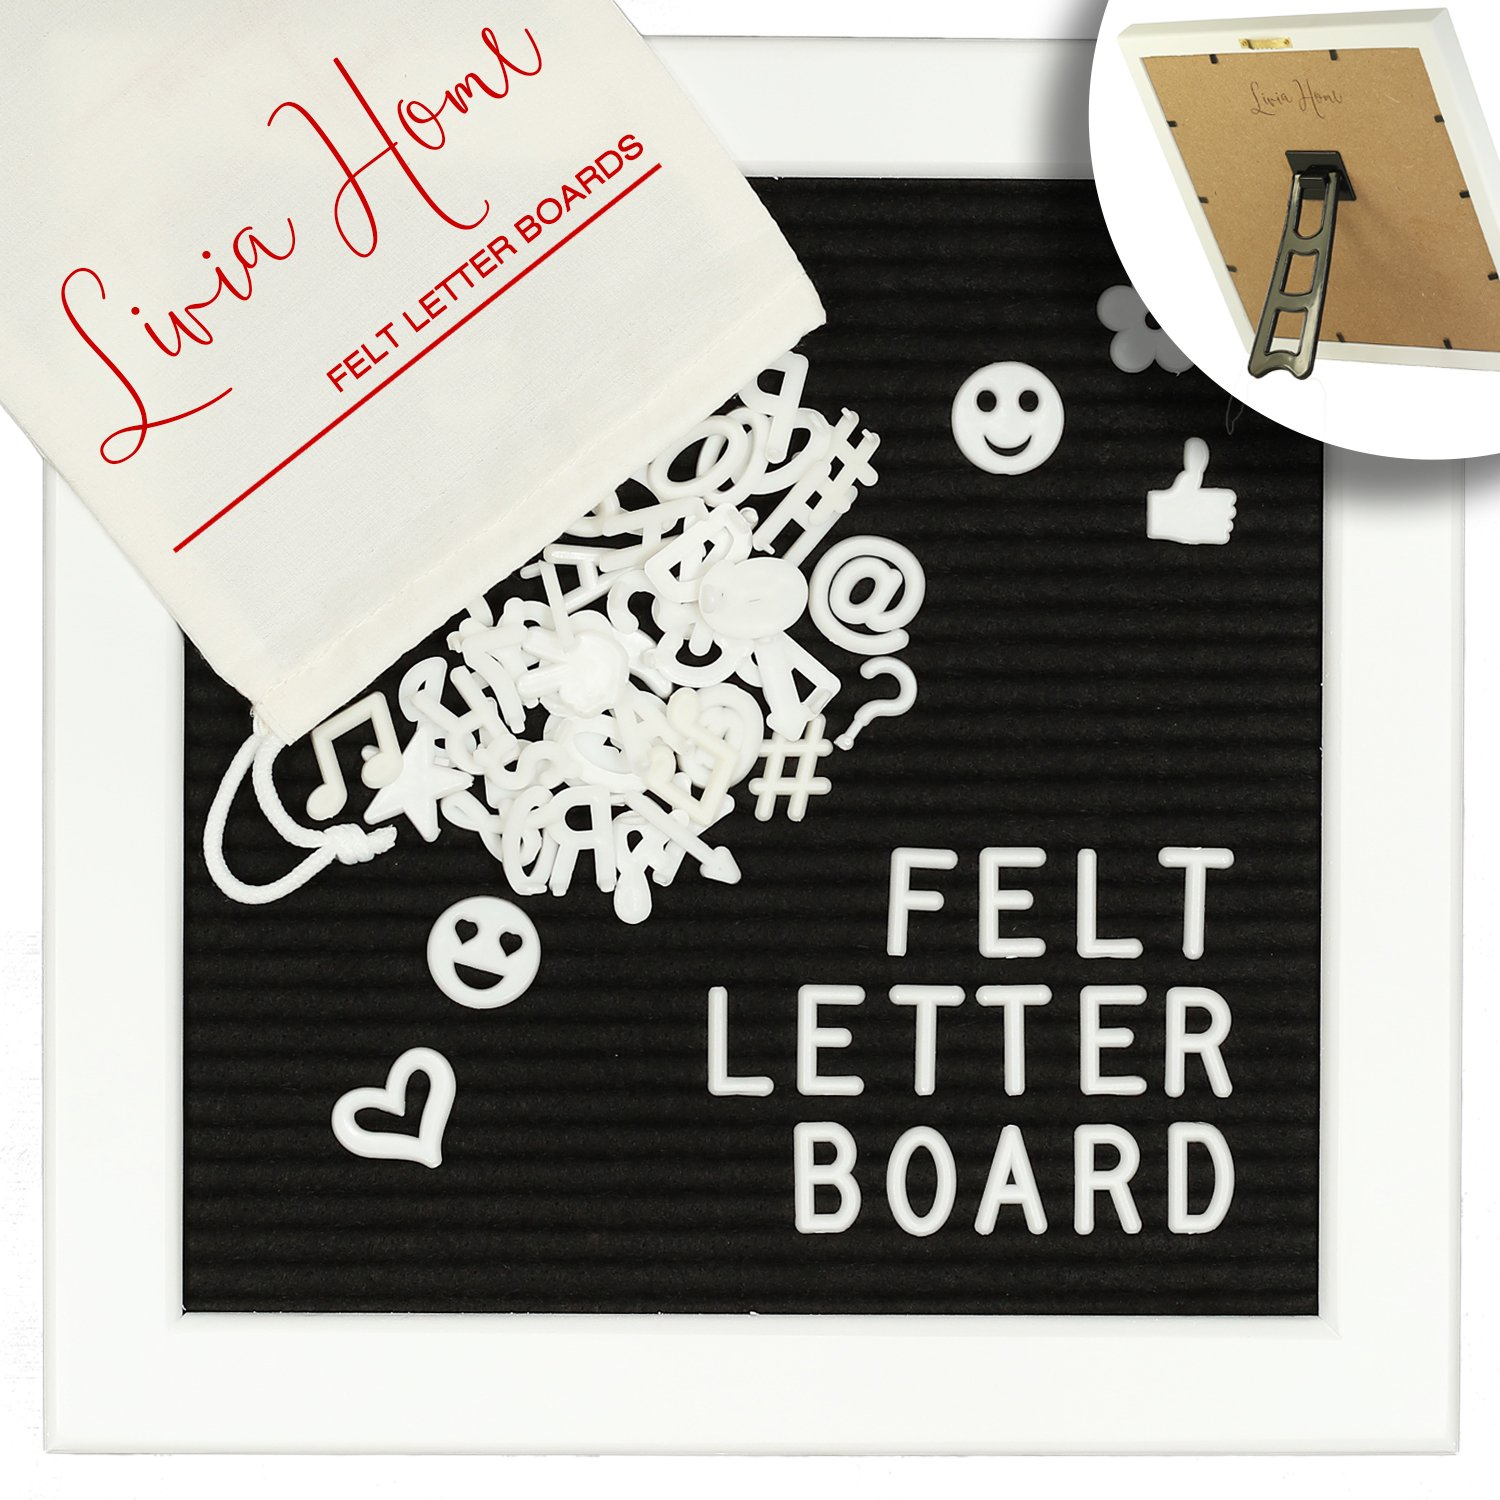 Letter Board with Stand – Black Felt Sign with 346 White Plastic Changeable Characters – Wooden 10 x 10 inch Square White Frame – with 7x5 inch Canvas Bag - Desktop Display by Livia Home by Livia Home (Image #1)